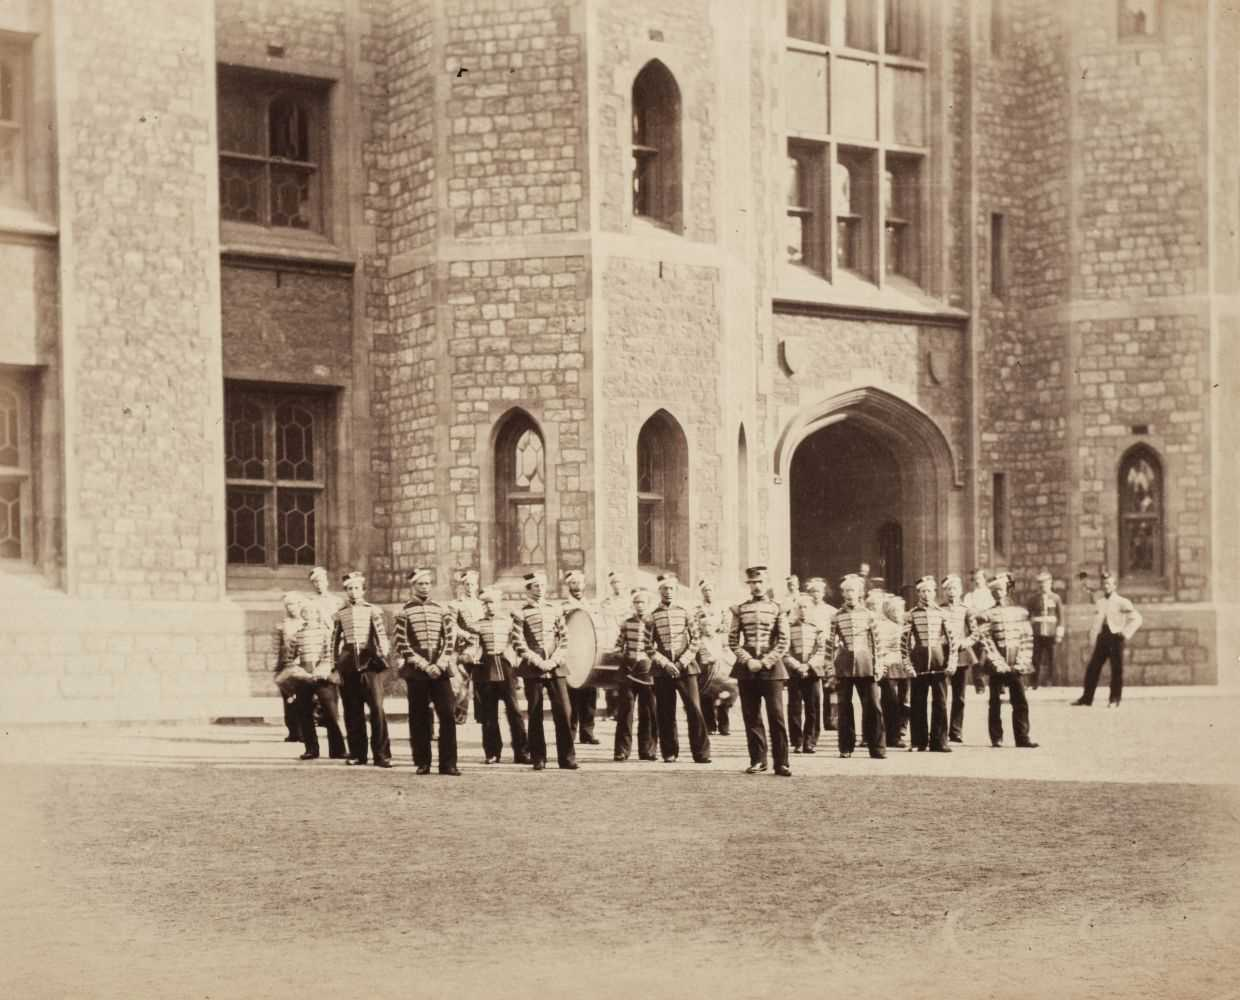 Lot 9-Fenton (Roger, attributed to). Military band on parade, c. 1858-1860